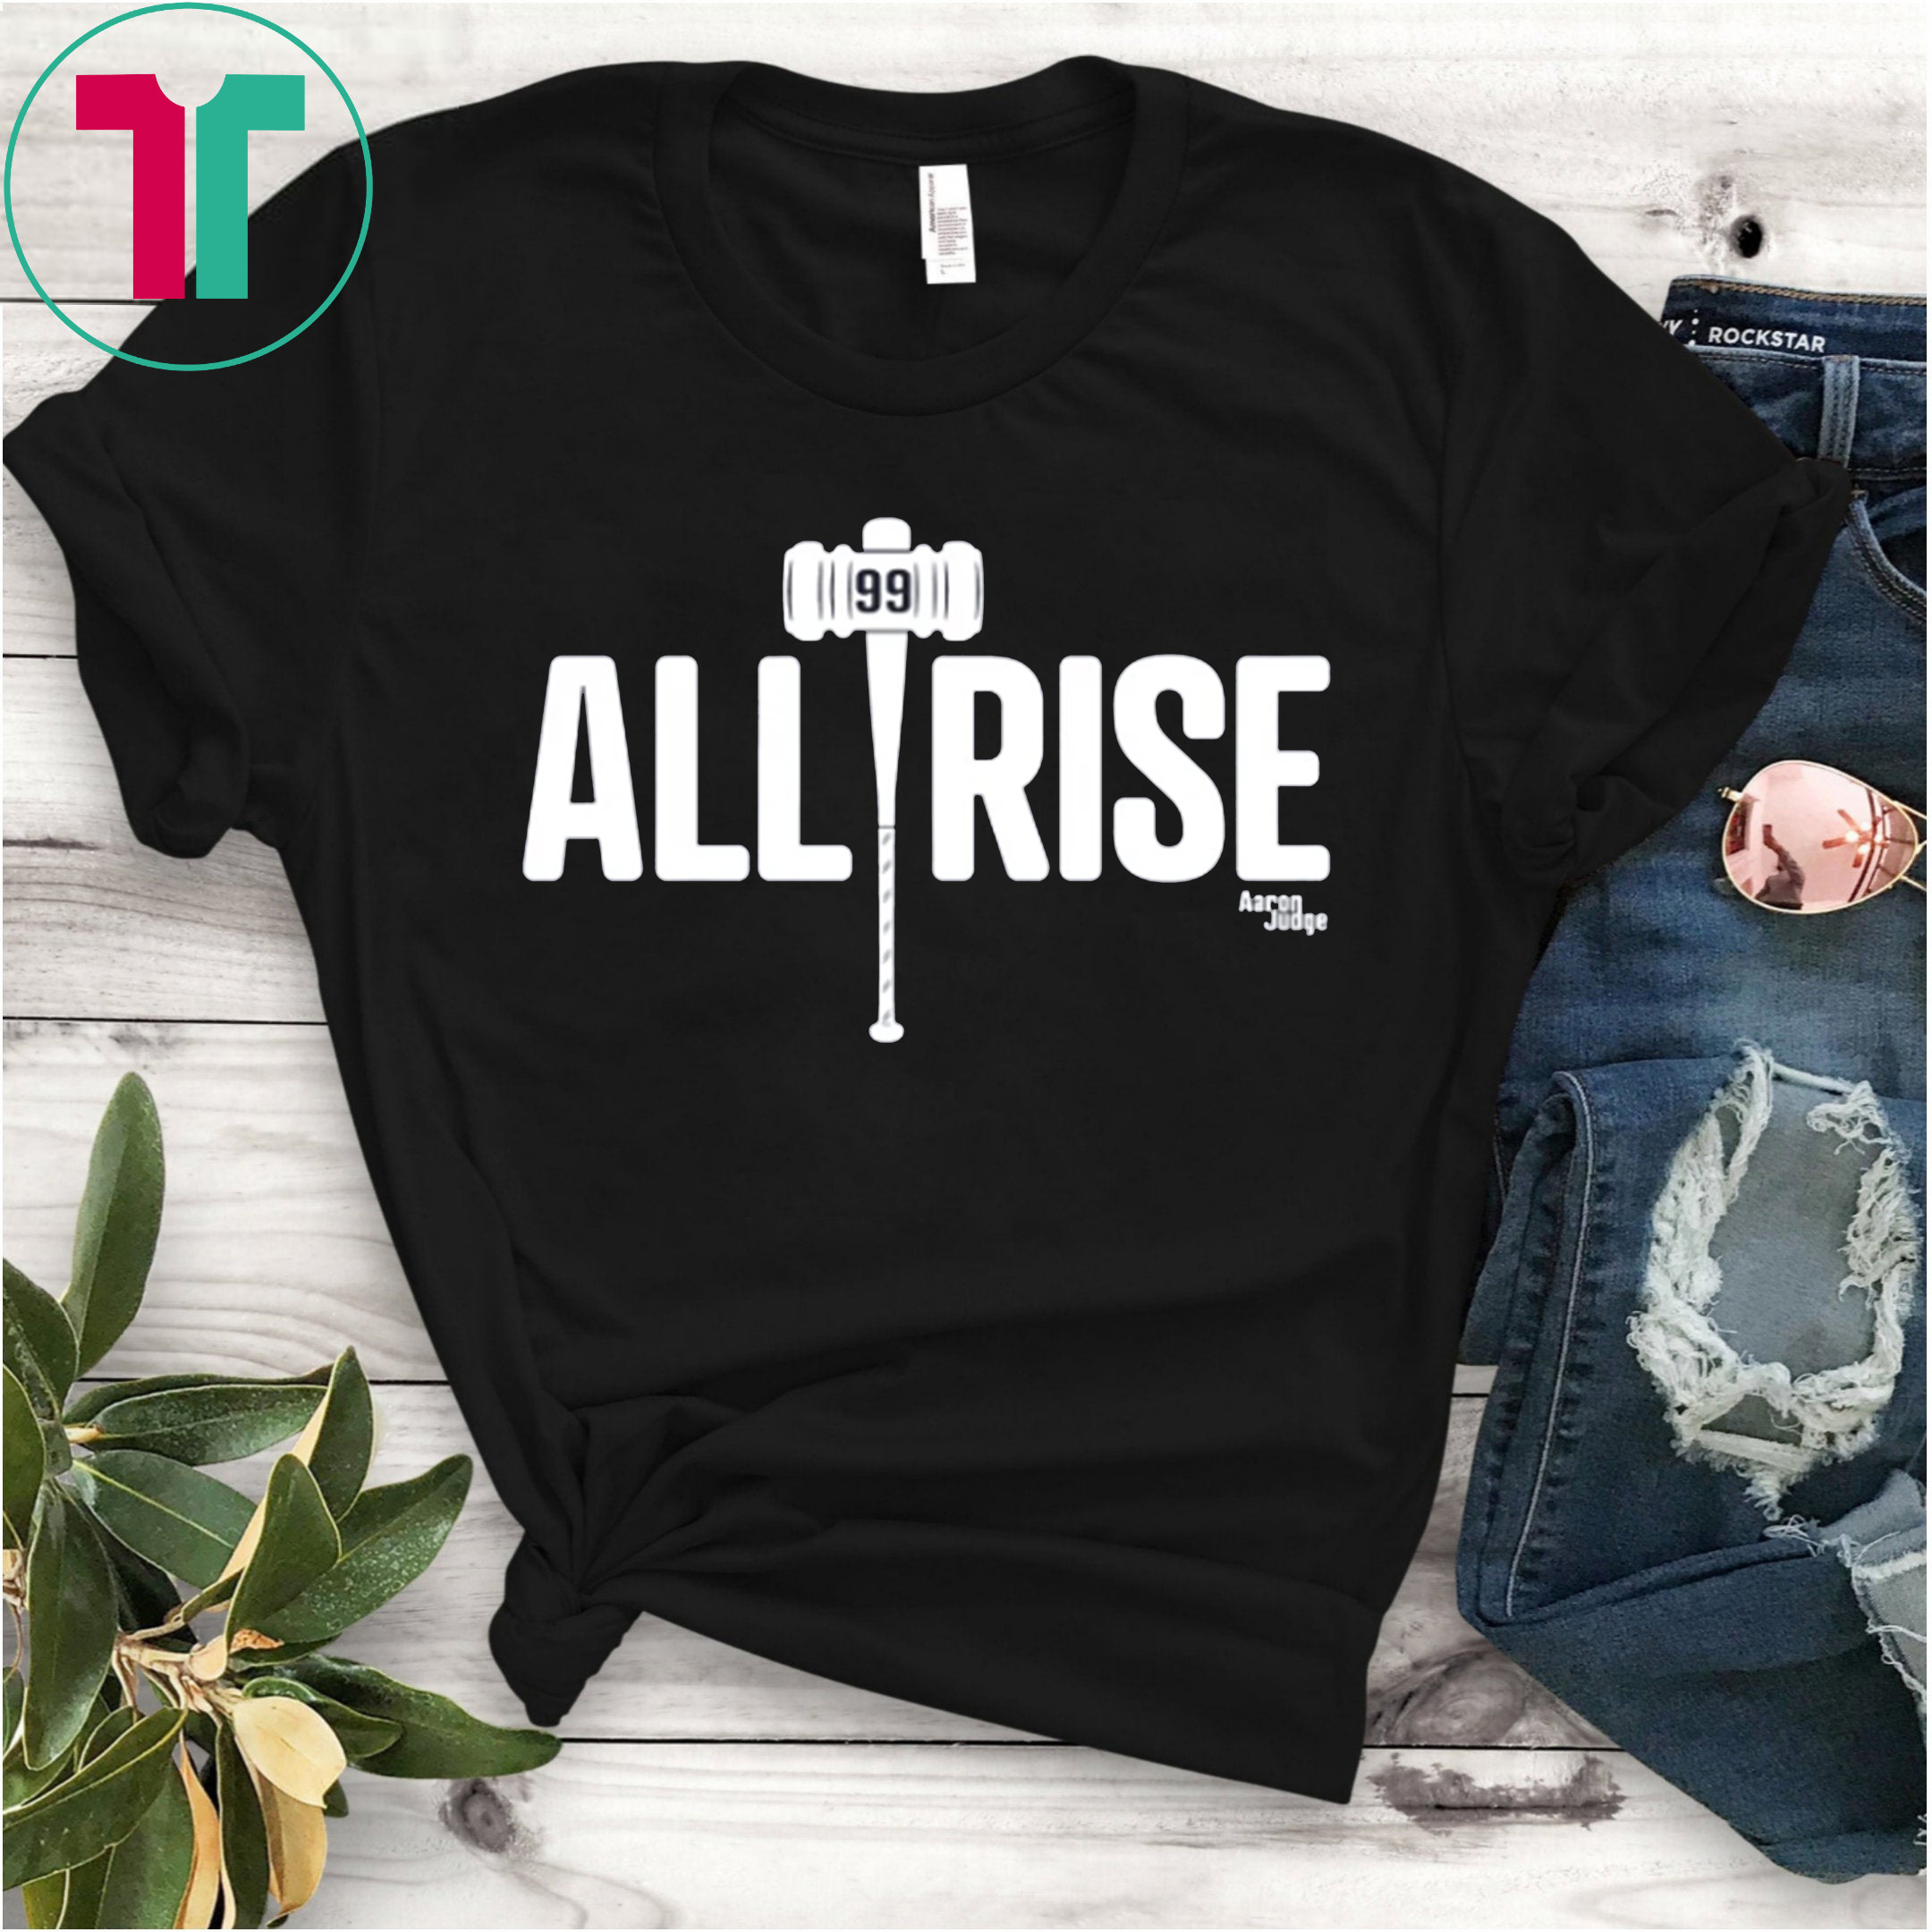 reputable site aa2e2 9af9a All Rise T-Shirt All Rise For 100 Home Runs T-Shirt Aaron Judge - New York  Yankees